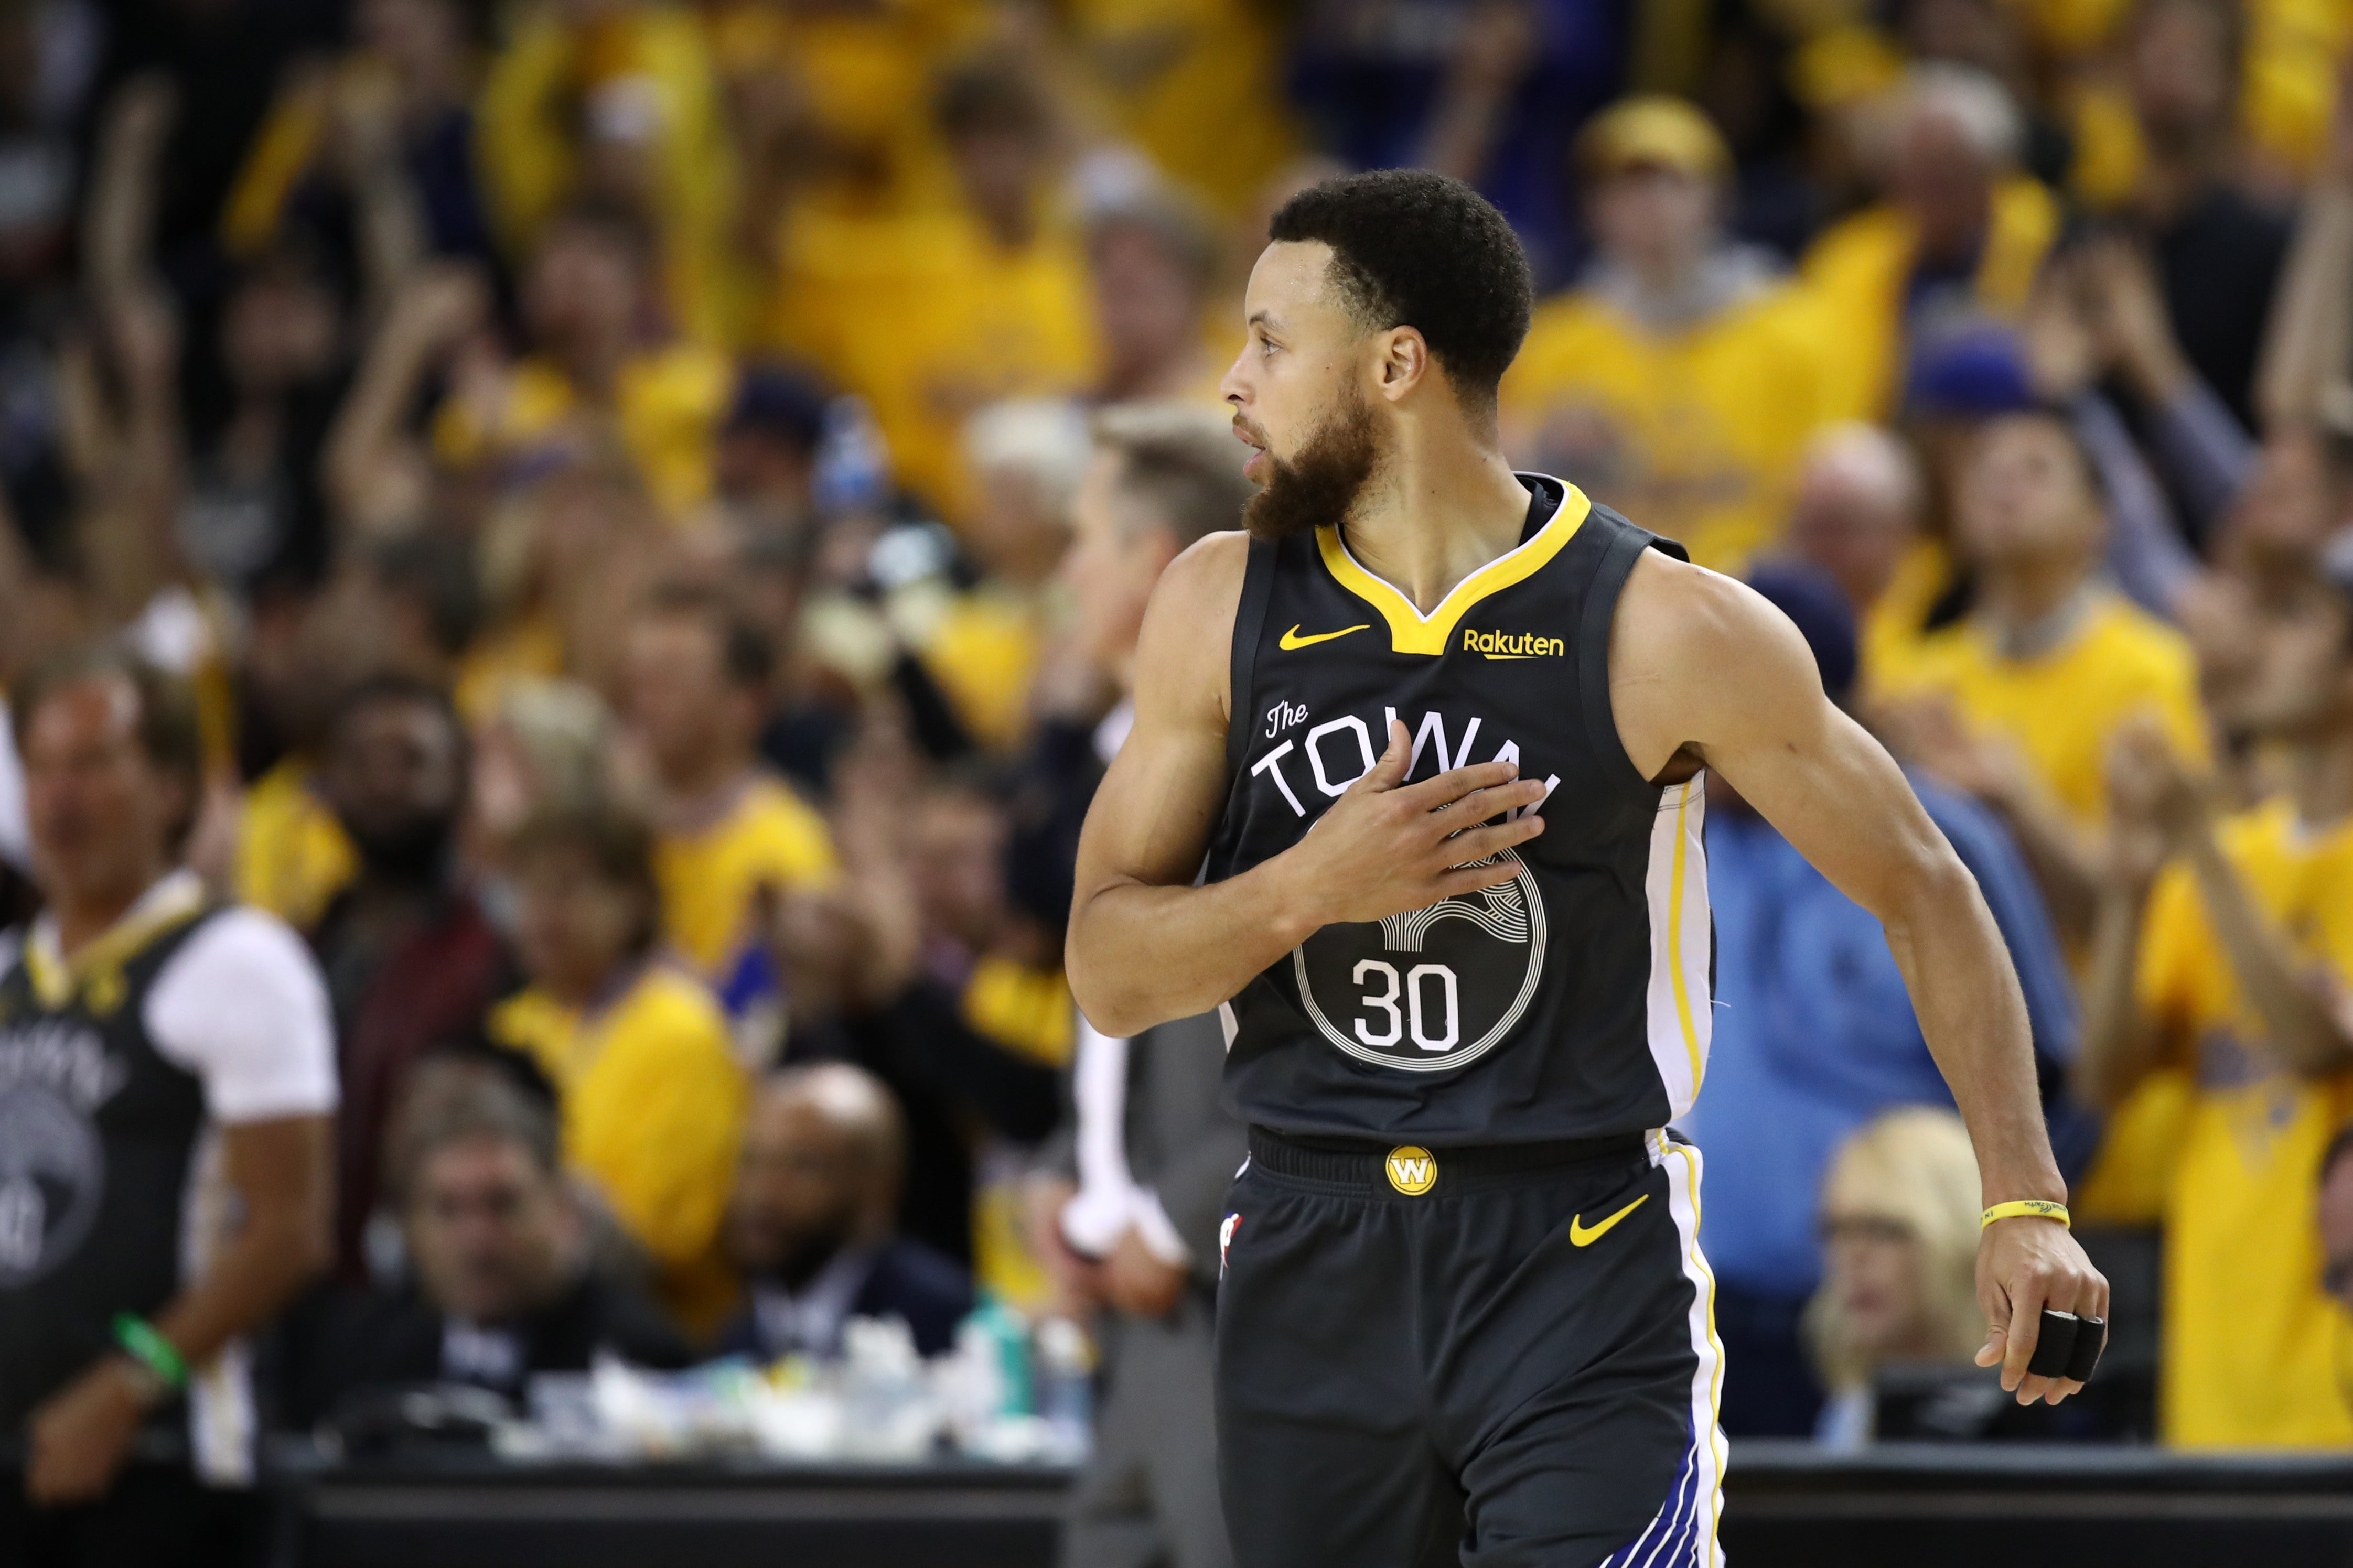 Stephen Curry S Mom Shares Story About A Fail He Had As A Kid That Made Him Who He Is Today Brobible